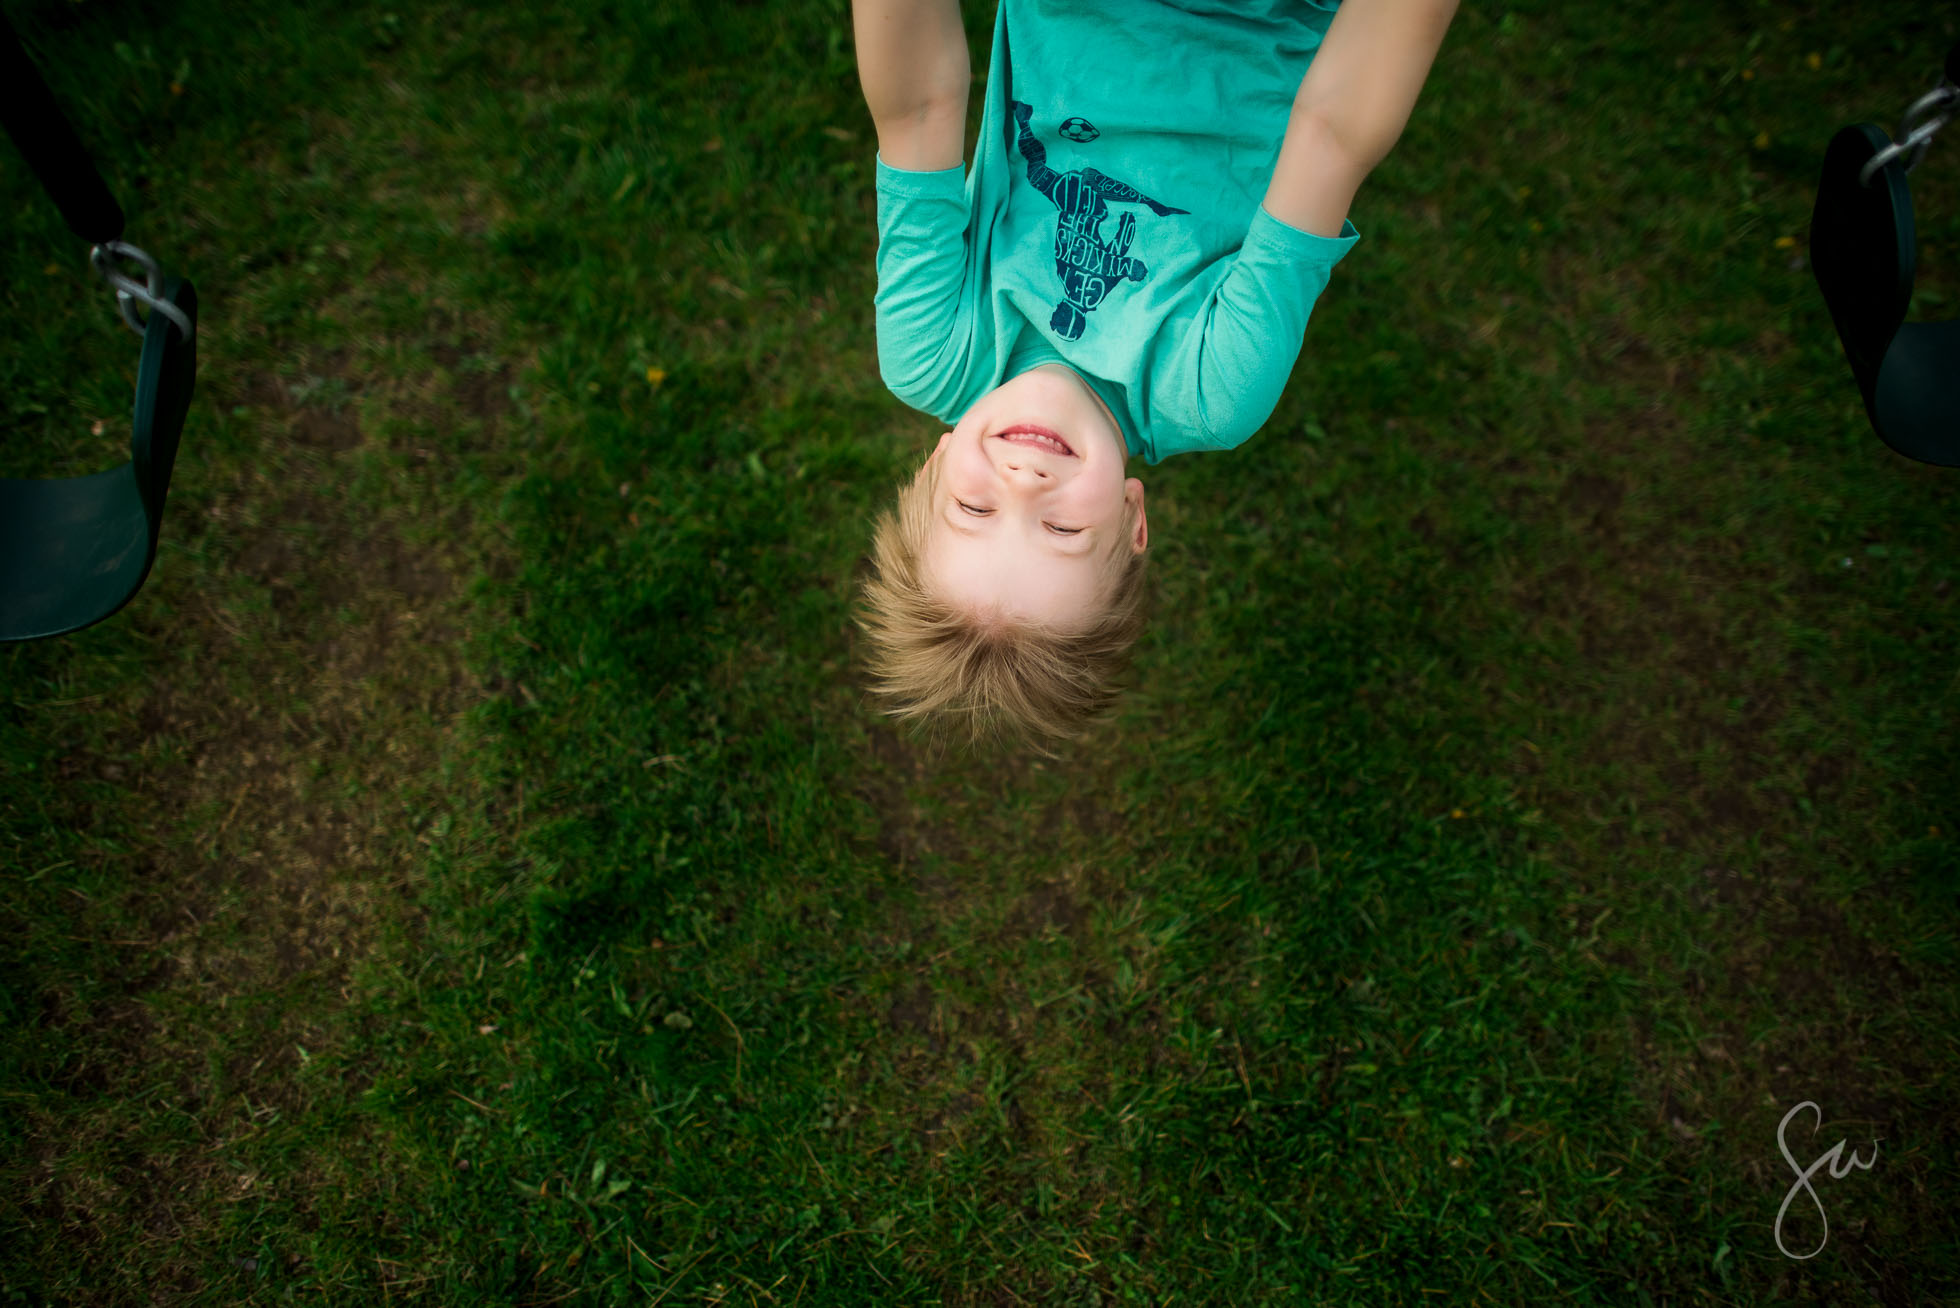 Joyful-Face-of-Child-Hanging-Upside-Down-on-Swings-by-Sarah-Wilkerson-